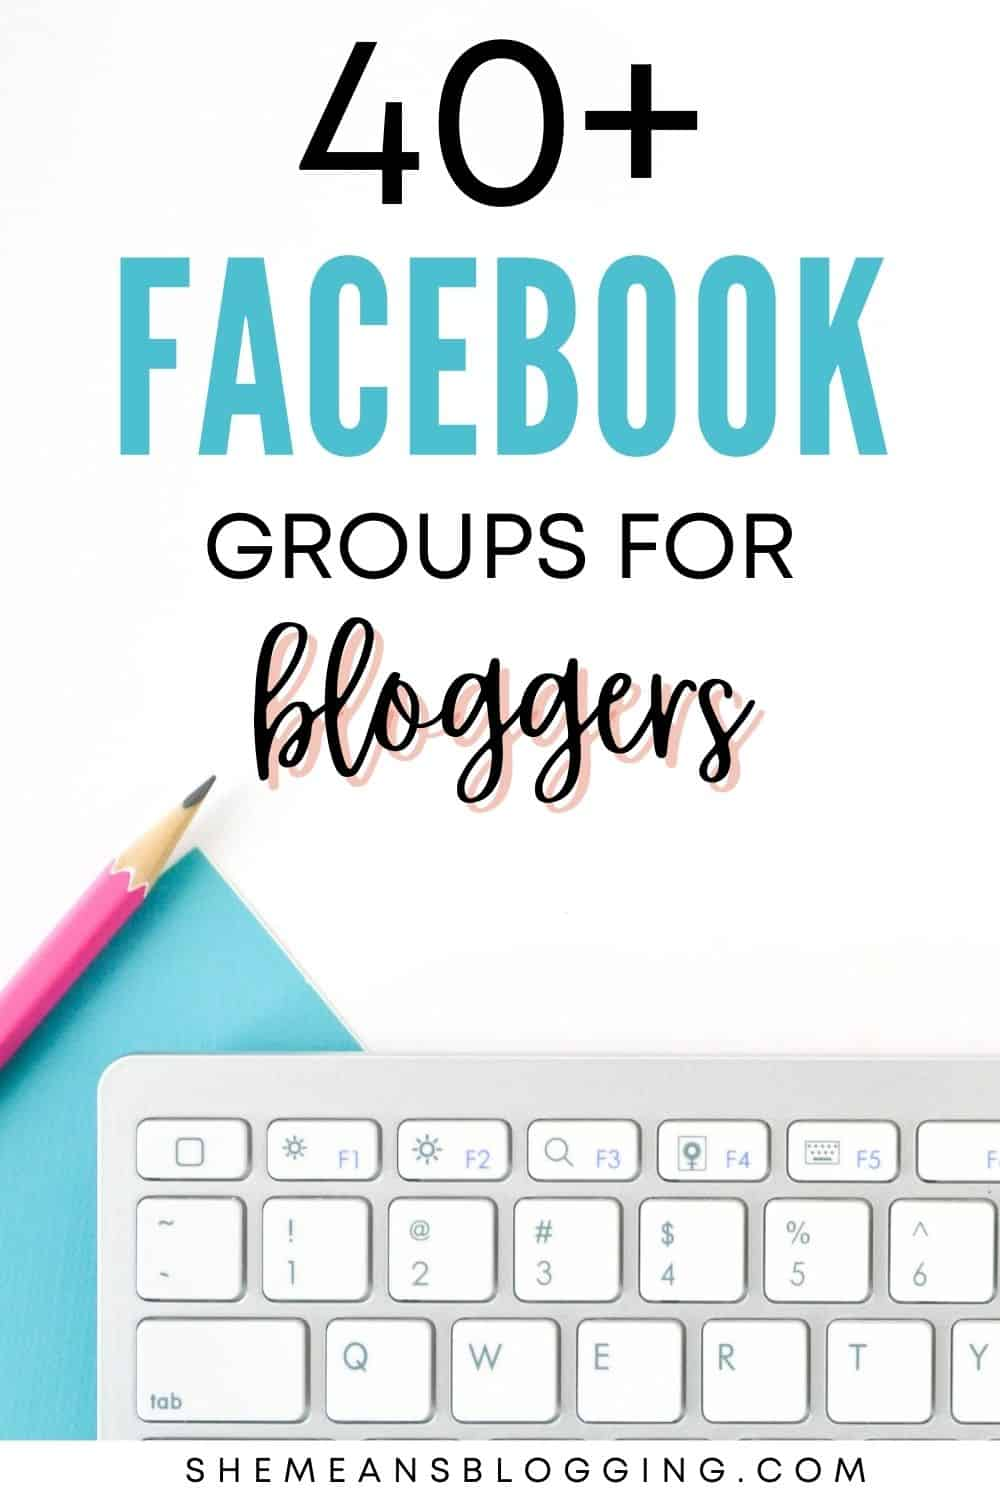 Do you know facebook groups are major source of traffic and value? Click to join best facebook groups for bloggers. You can use facebook groups to promote content and grow traffic to your blog. Click to find 40+ facebook groups for bloggers in different niches